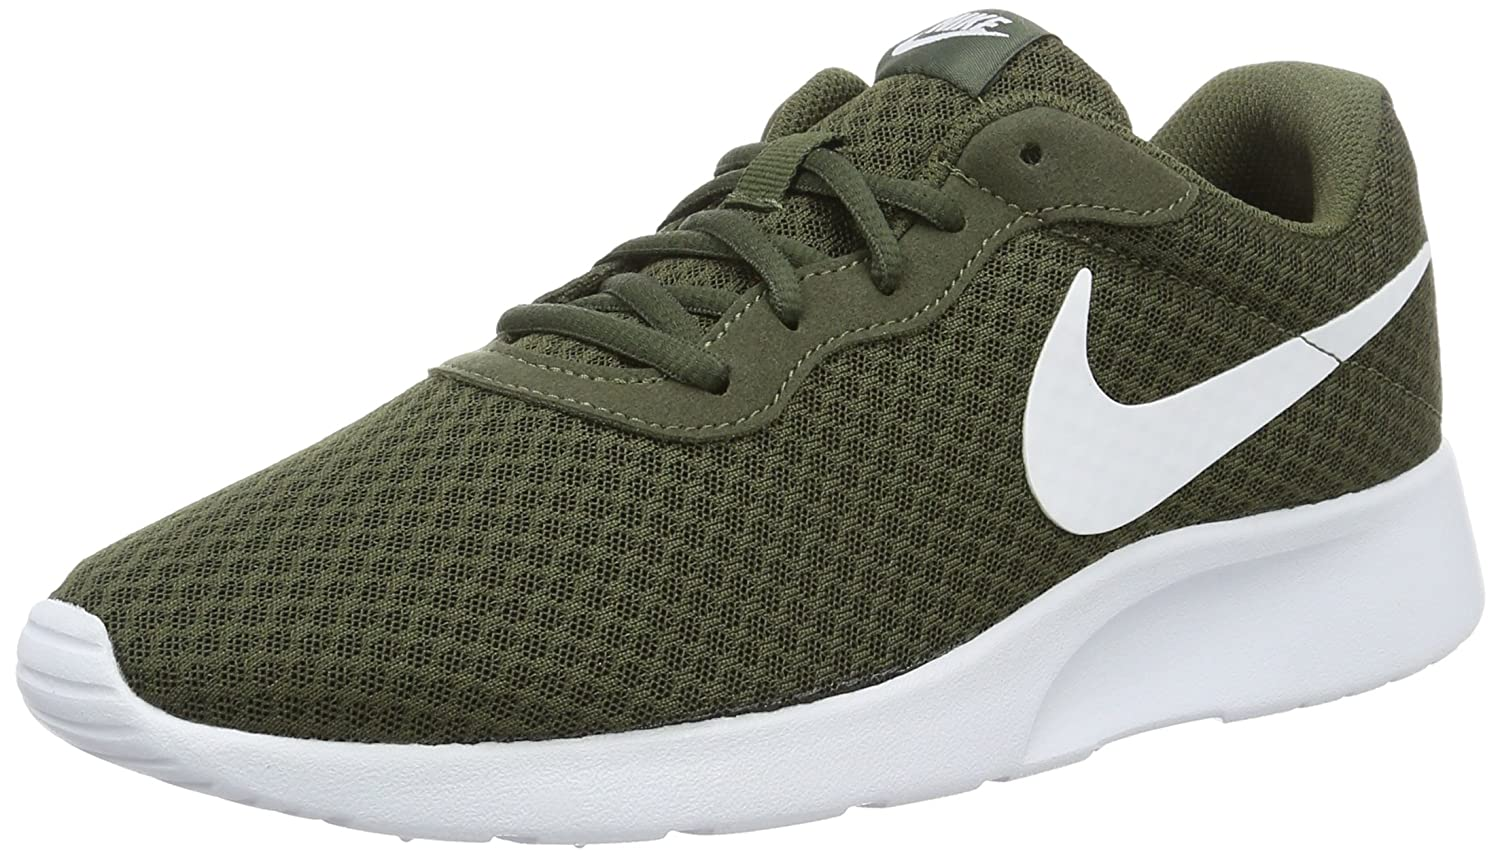 NIKE Men's Tanjun Sneakers, Breathable Textile Uppers and Comfortable Lightweight Cushioning B018Z0T6EM 10.5 D(M) US|Cargo Khaki/White